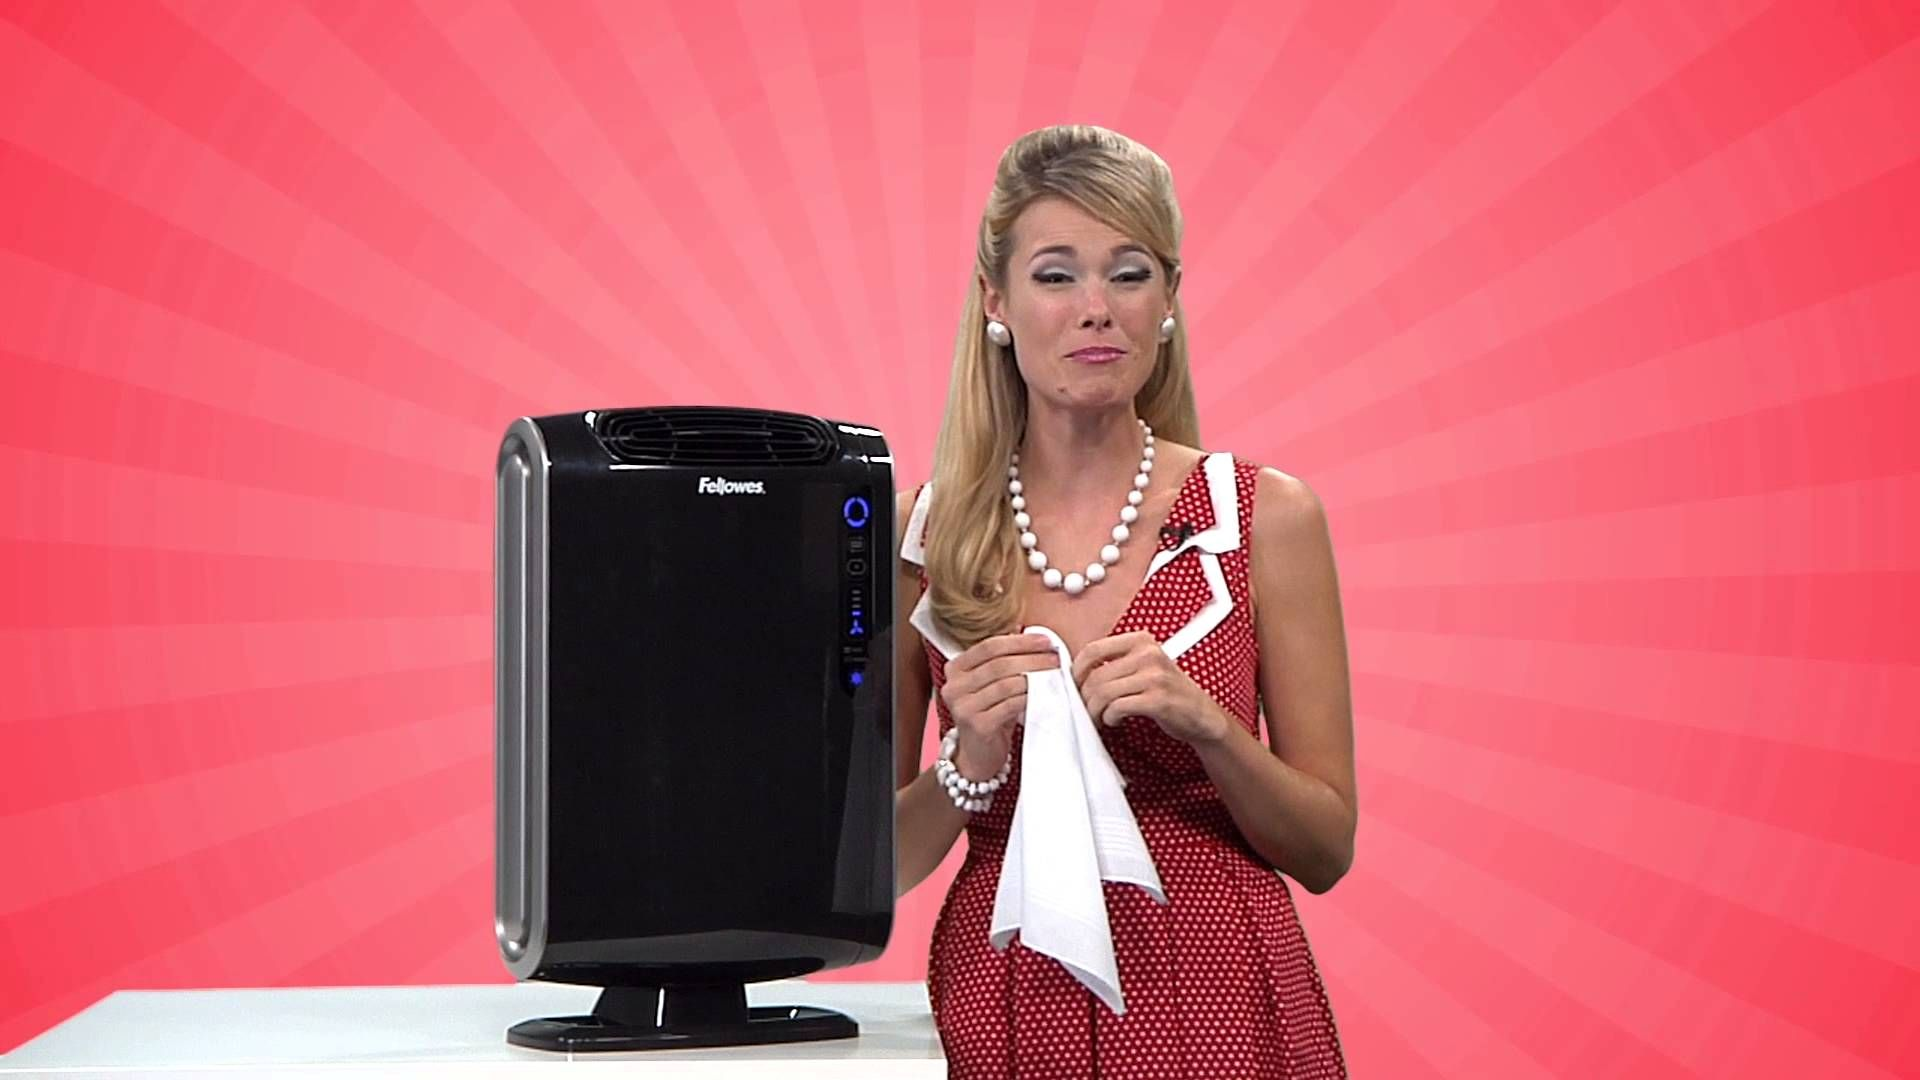 Fellowes AeraMax 190 Air Purifier (With images) Fellowes